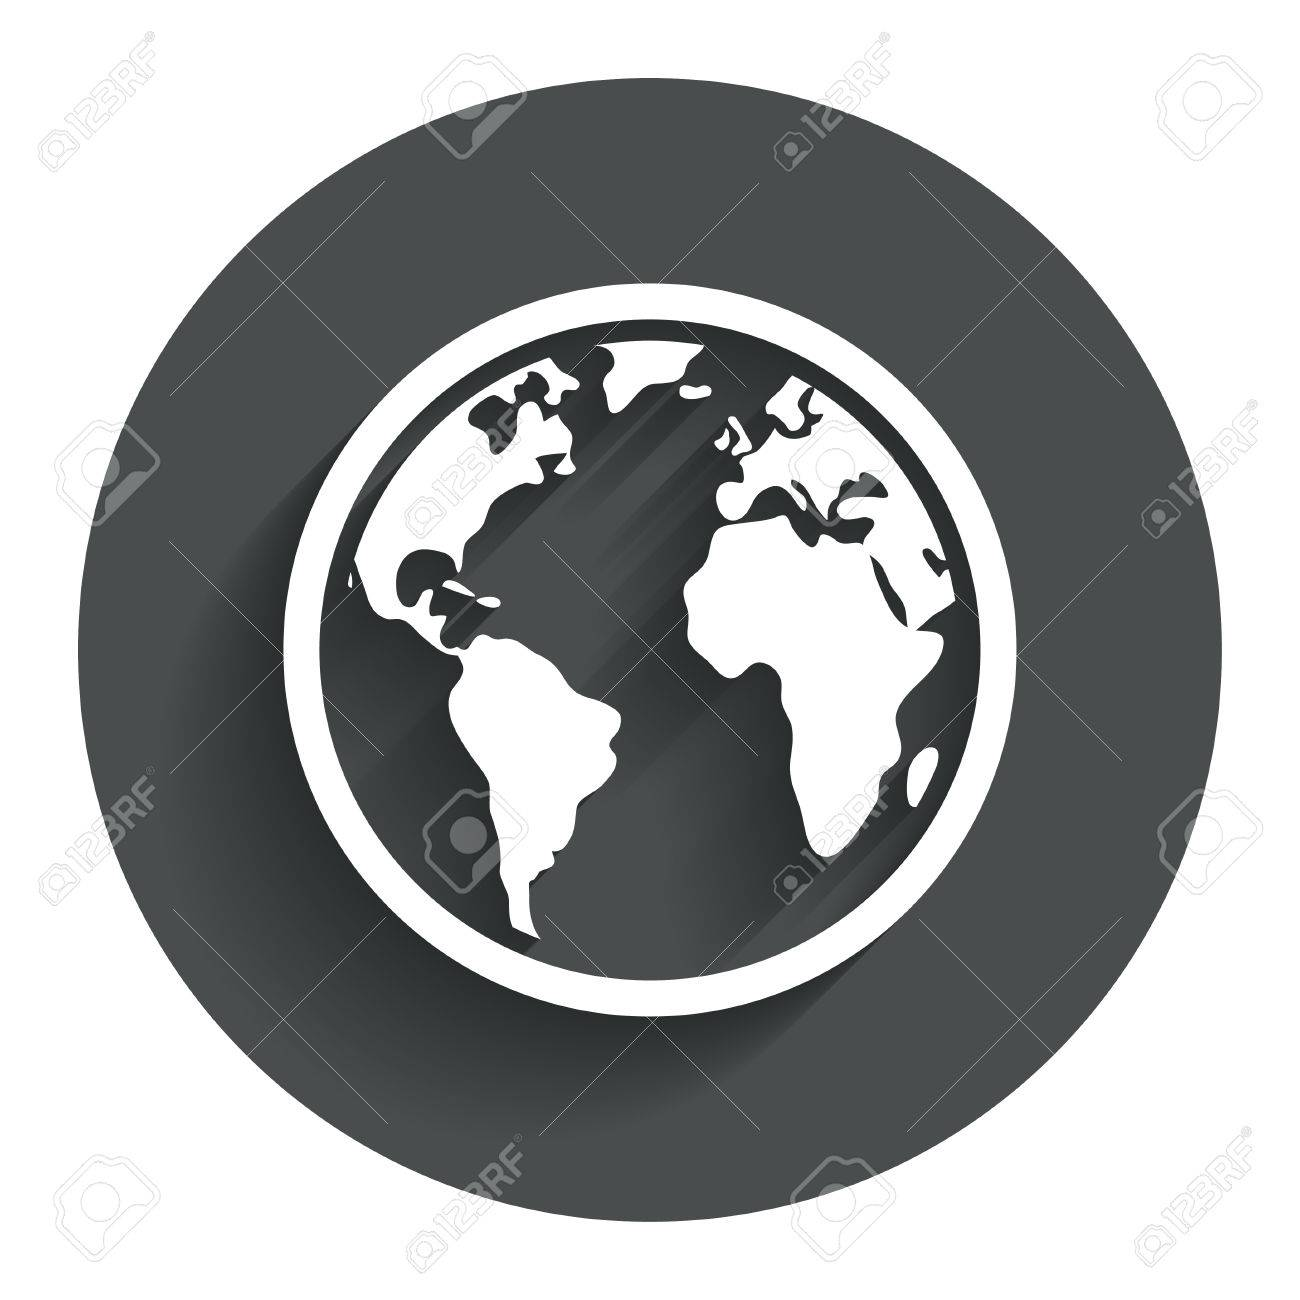 Globe sign icon world map geography symbol circle flat button world map geography symbol circle flat button with shadow modern gumiabroncs Gallery